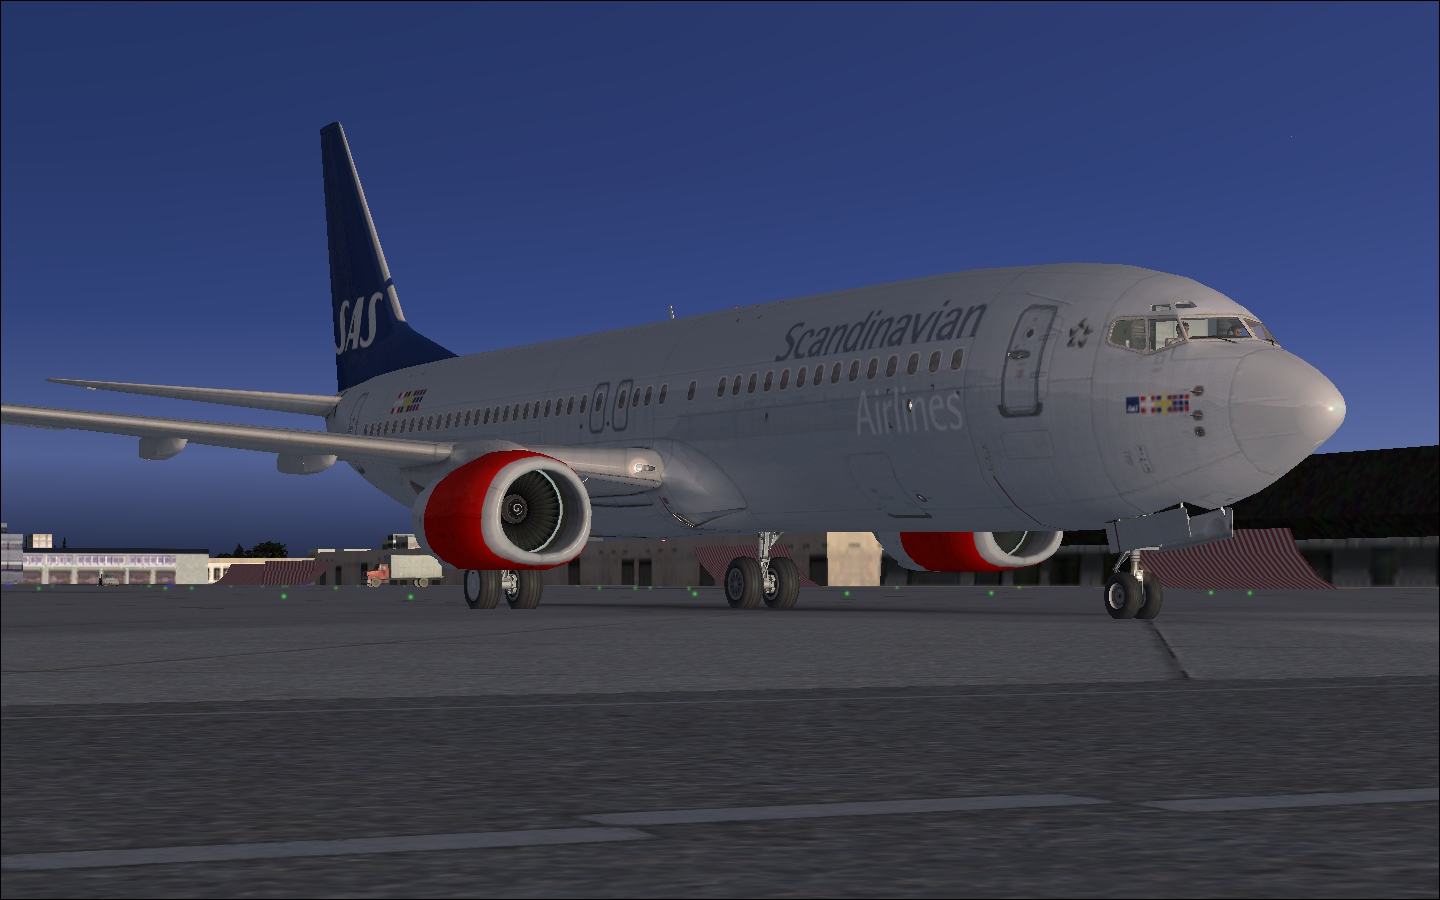 PERFECT FLIGHT - FLIGHT OPERATIONS X - SCANDINAVIAN AIRLINES - FSX